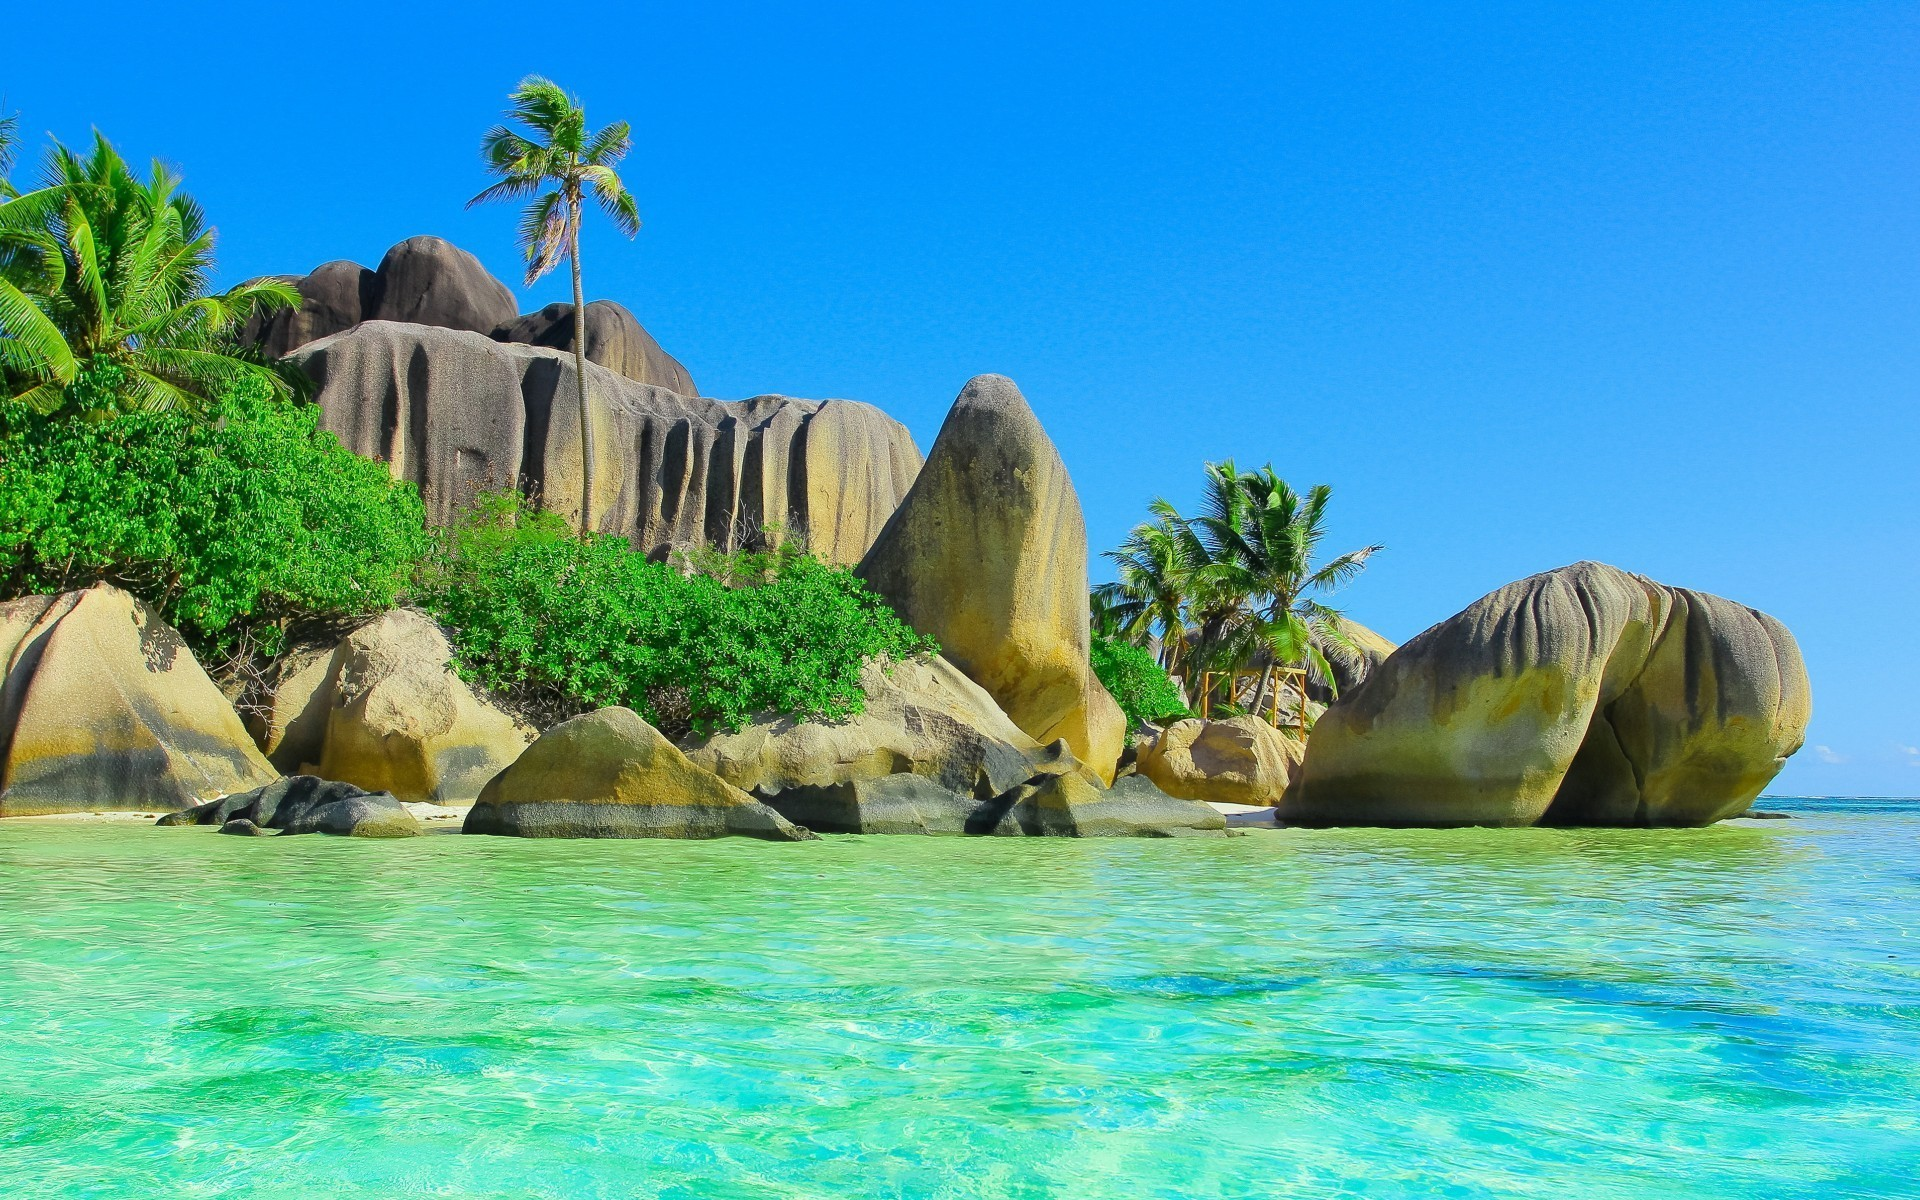 Hd Tropical Island Beach Paradise Wallpapers And Backgrounds: Tropical Island Wallpaper With Fish (49+ Images